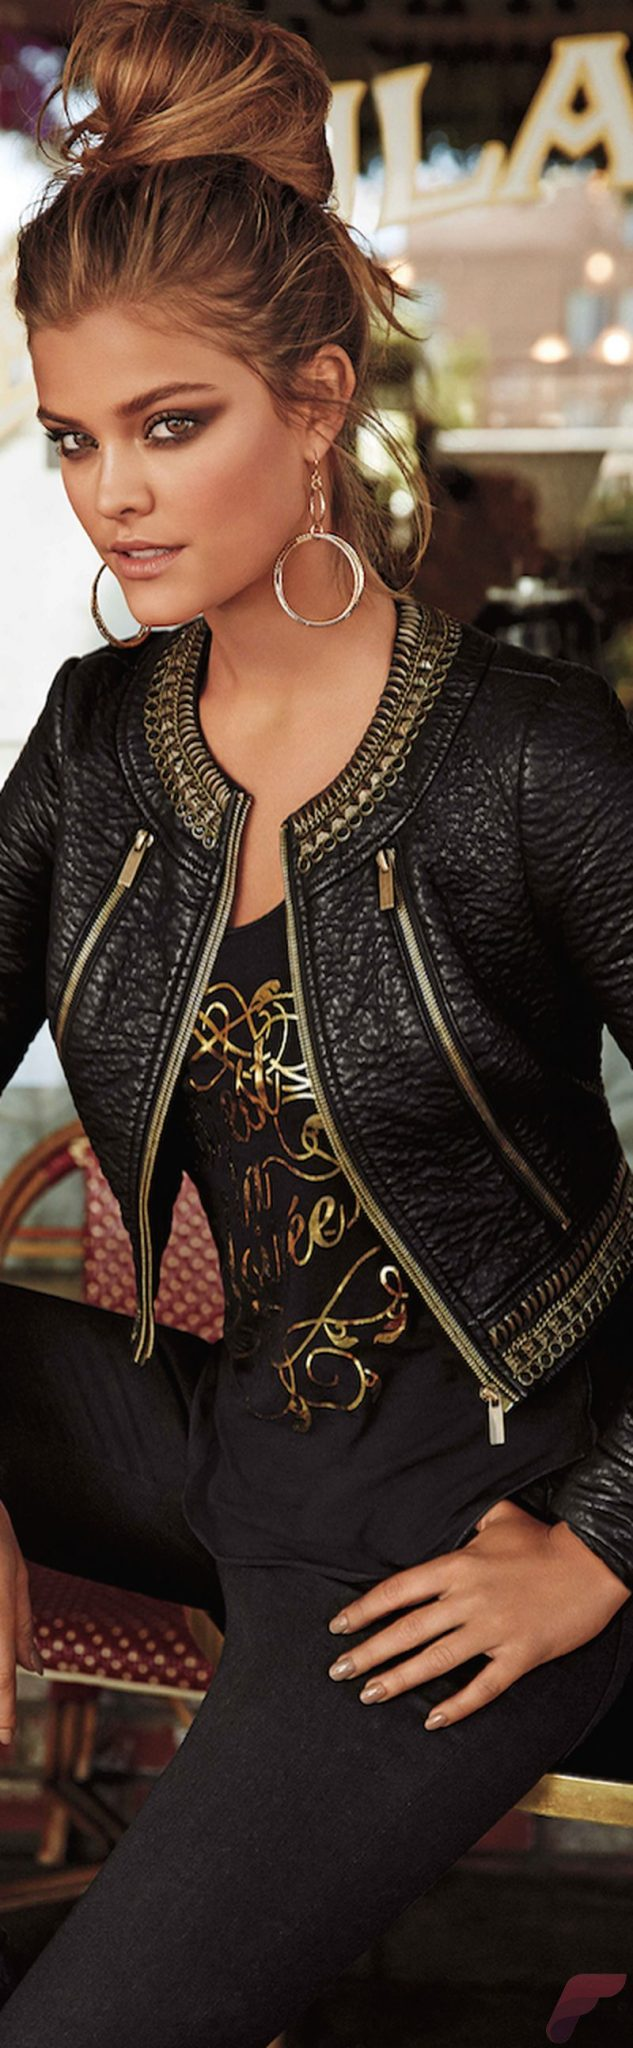 Black leather jacket outfit 5